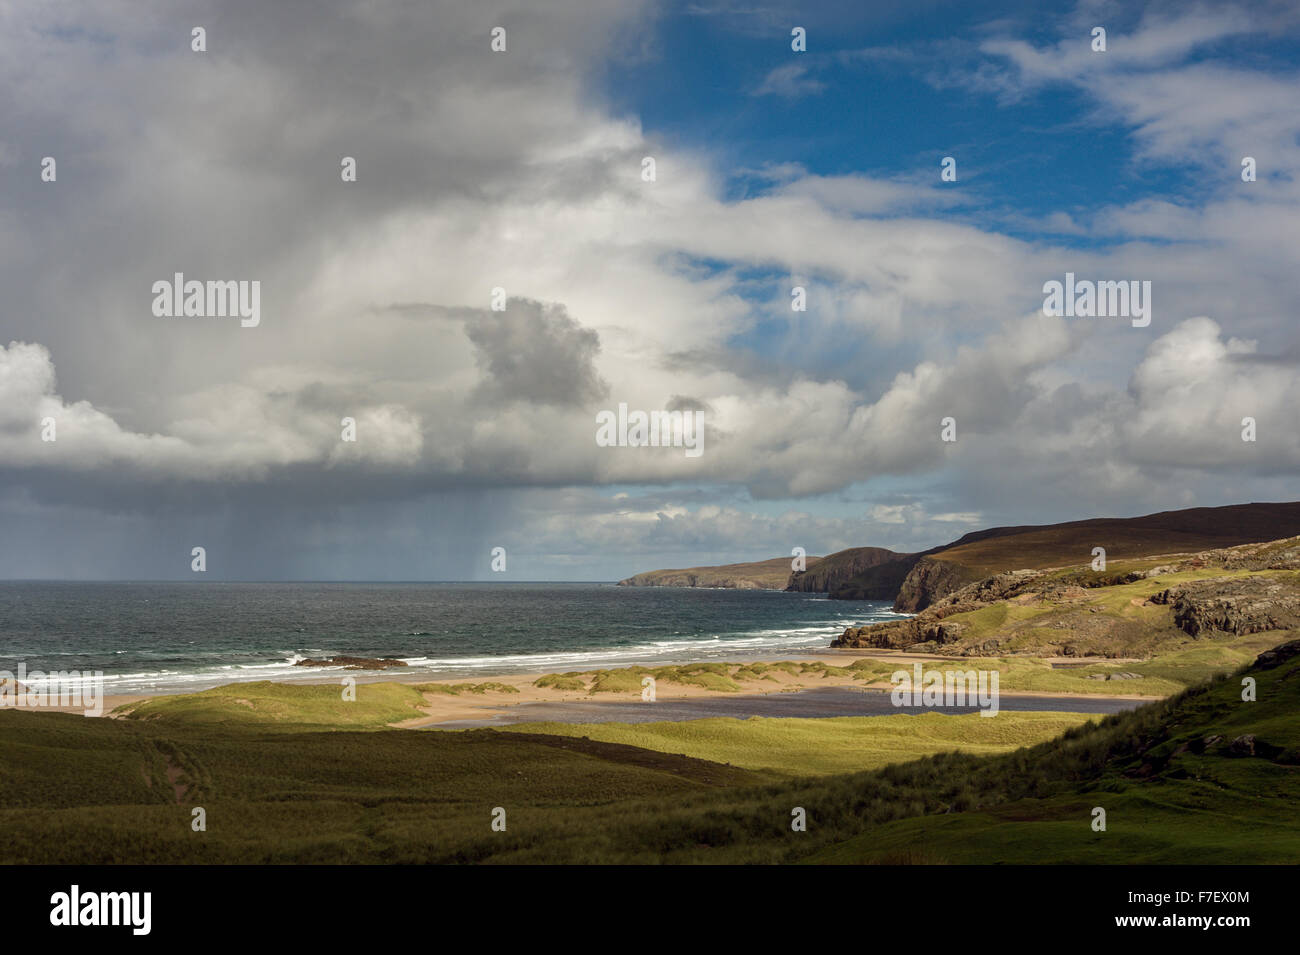 Looking from Sandwood Bay towards Cape Wrath - Stock Image